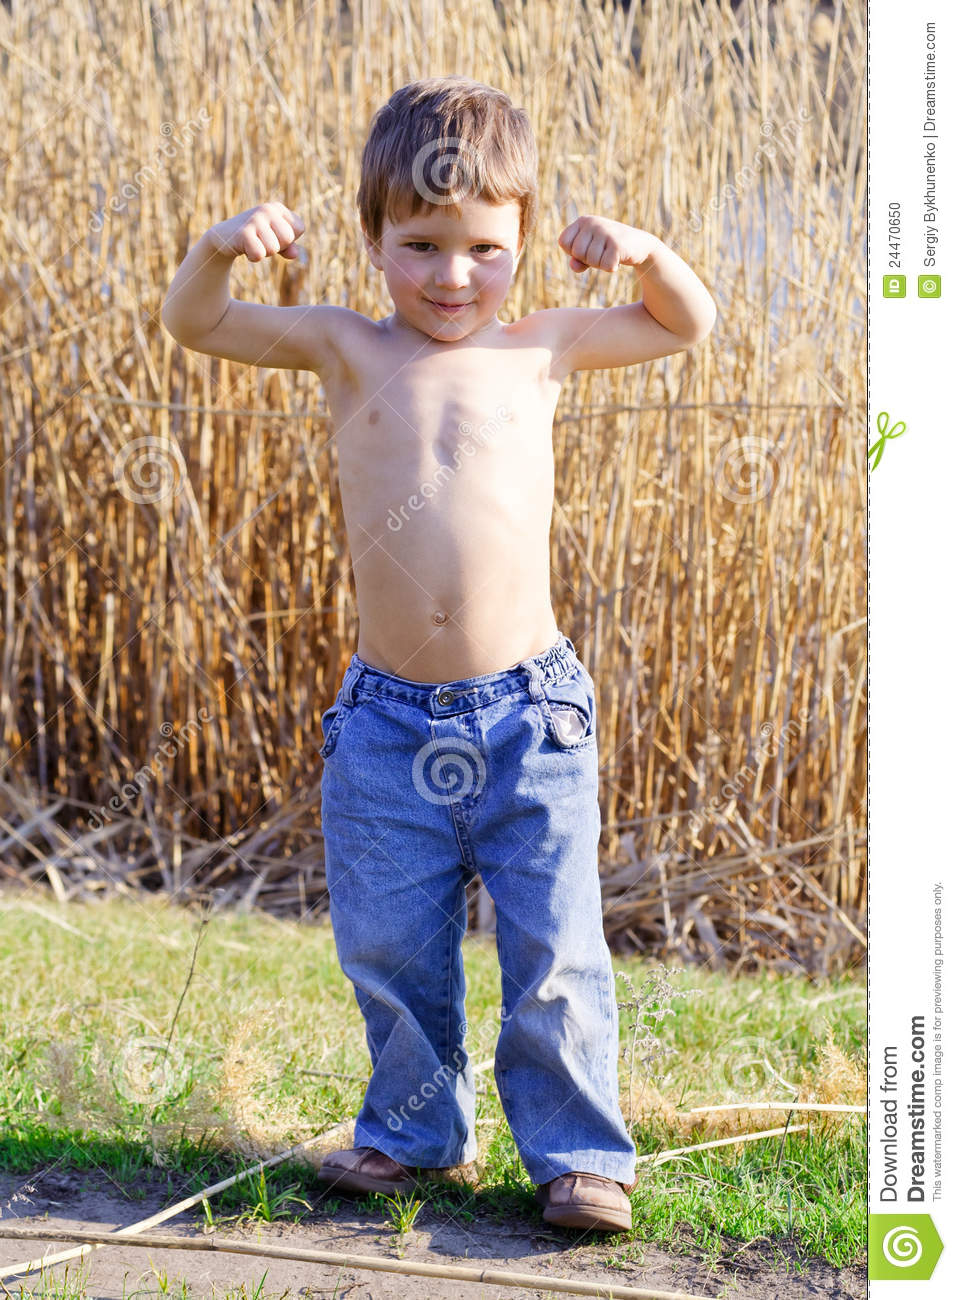 how to become strong for kids